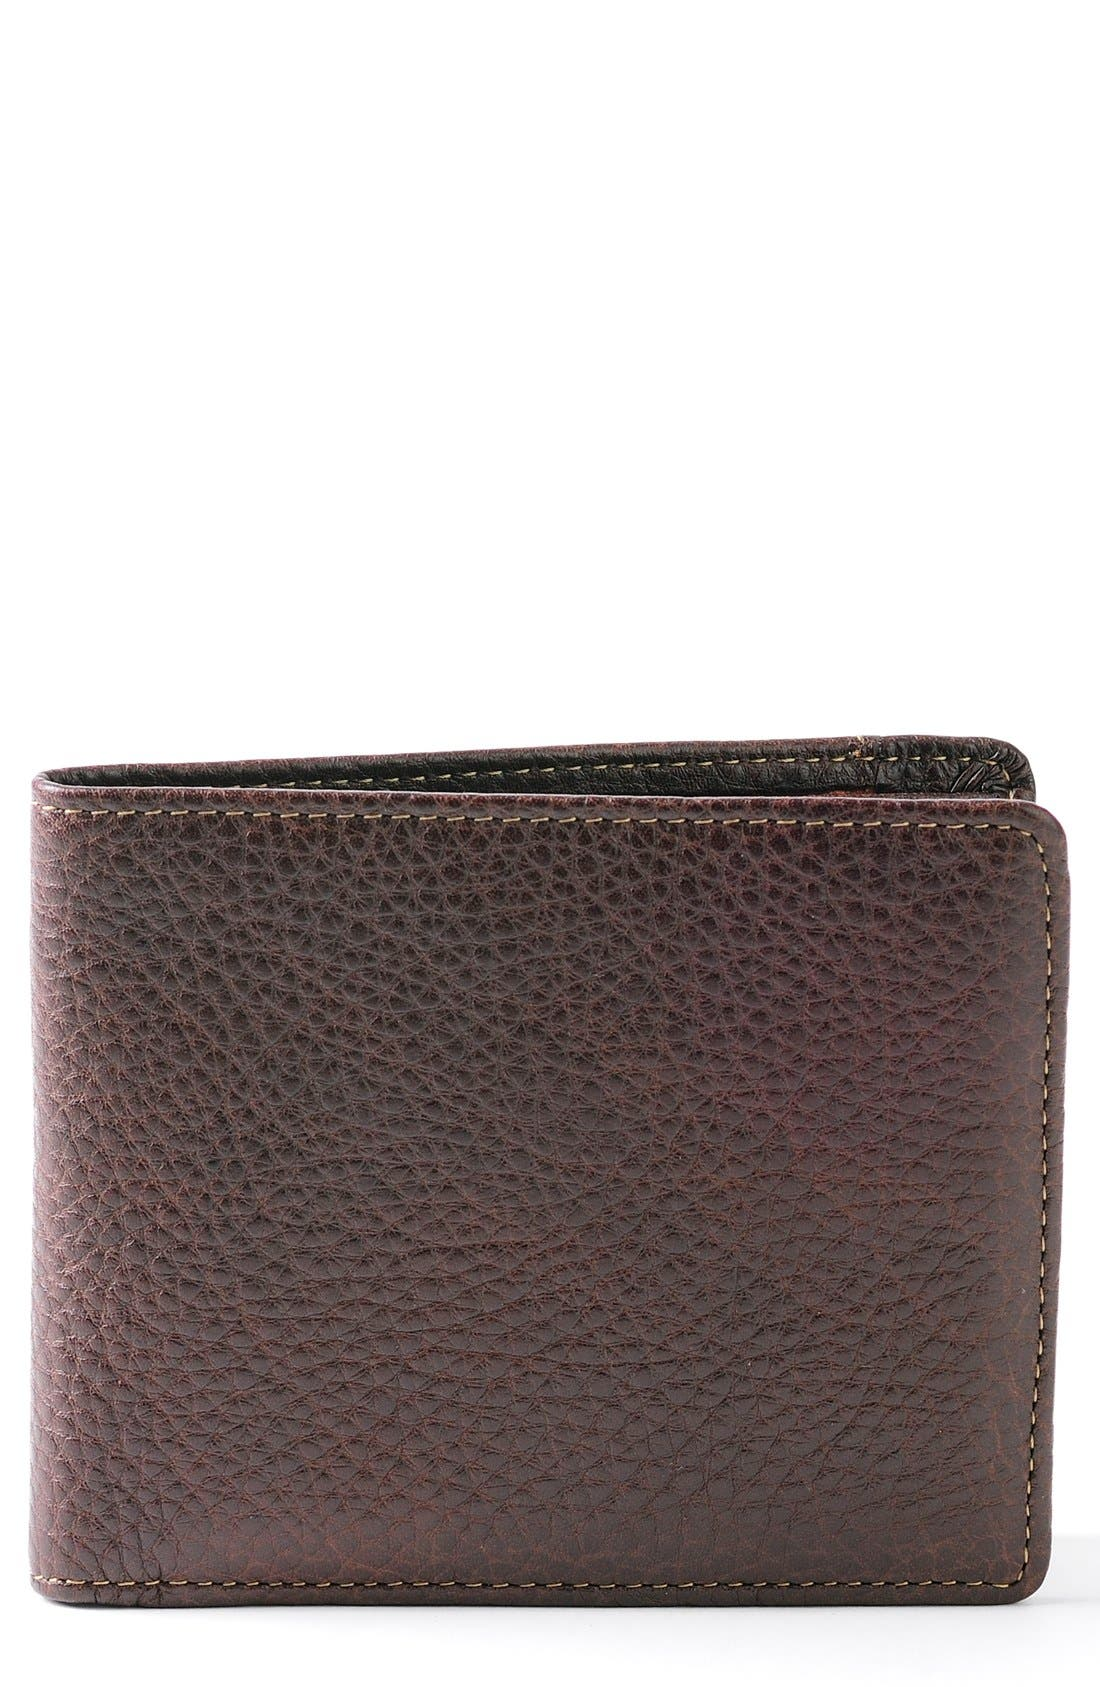 'Tyler' RFID Wallet,                             Main thumbnail 1, color,                             Coffee